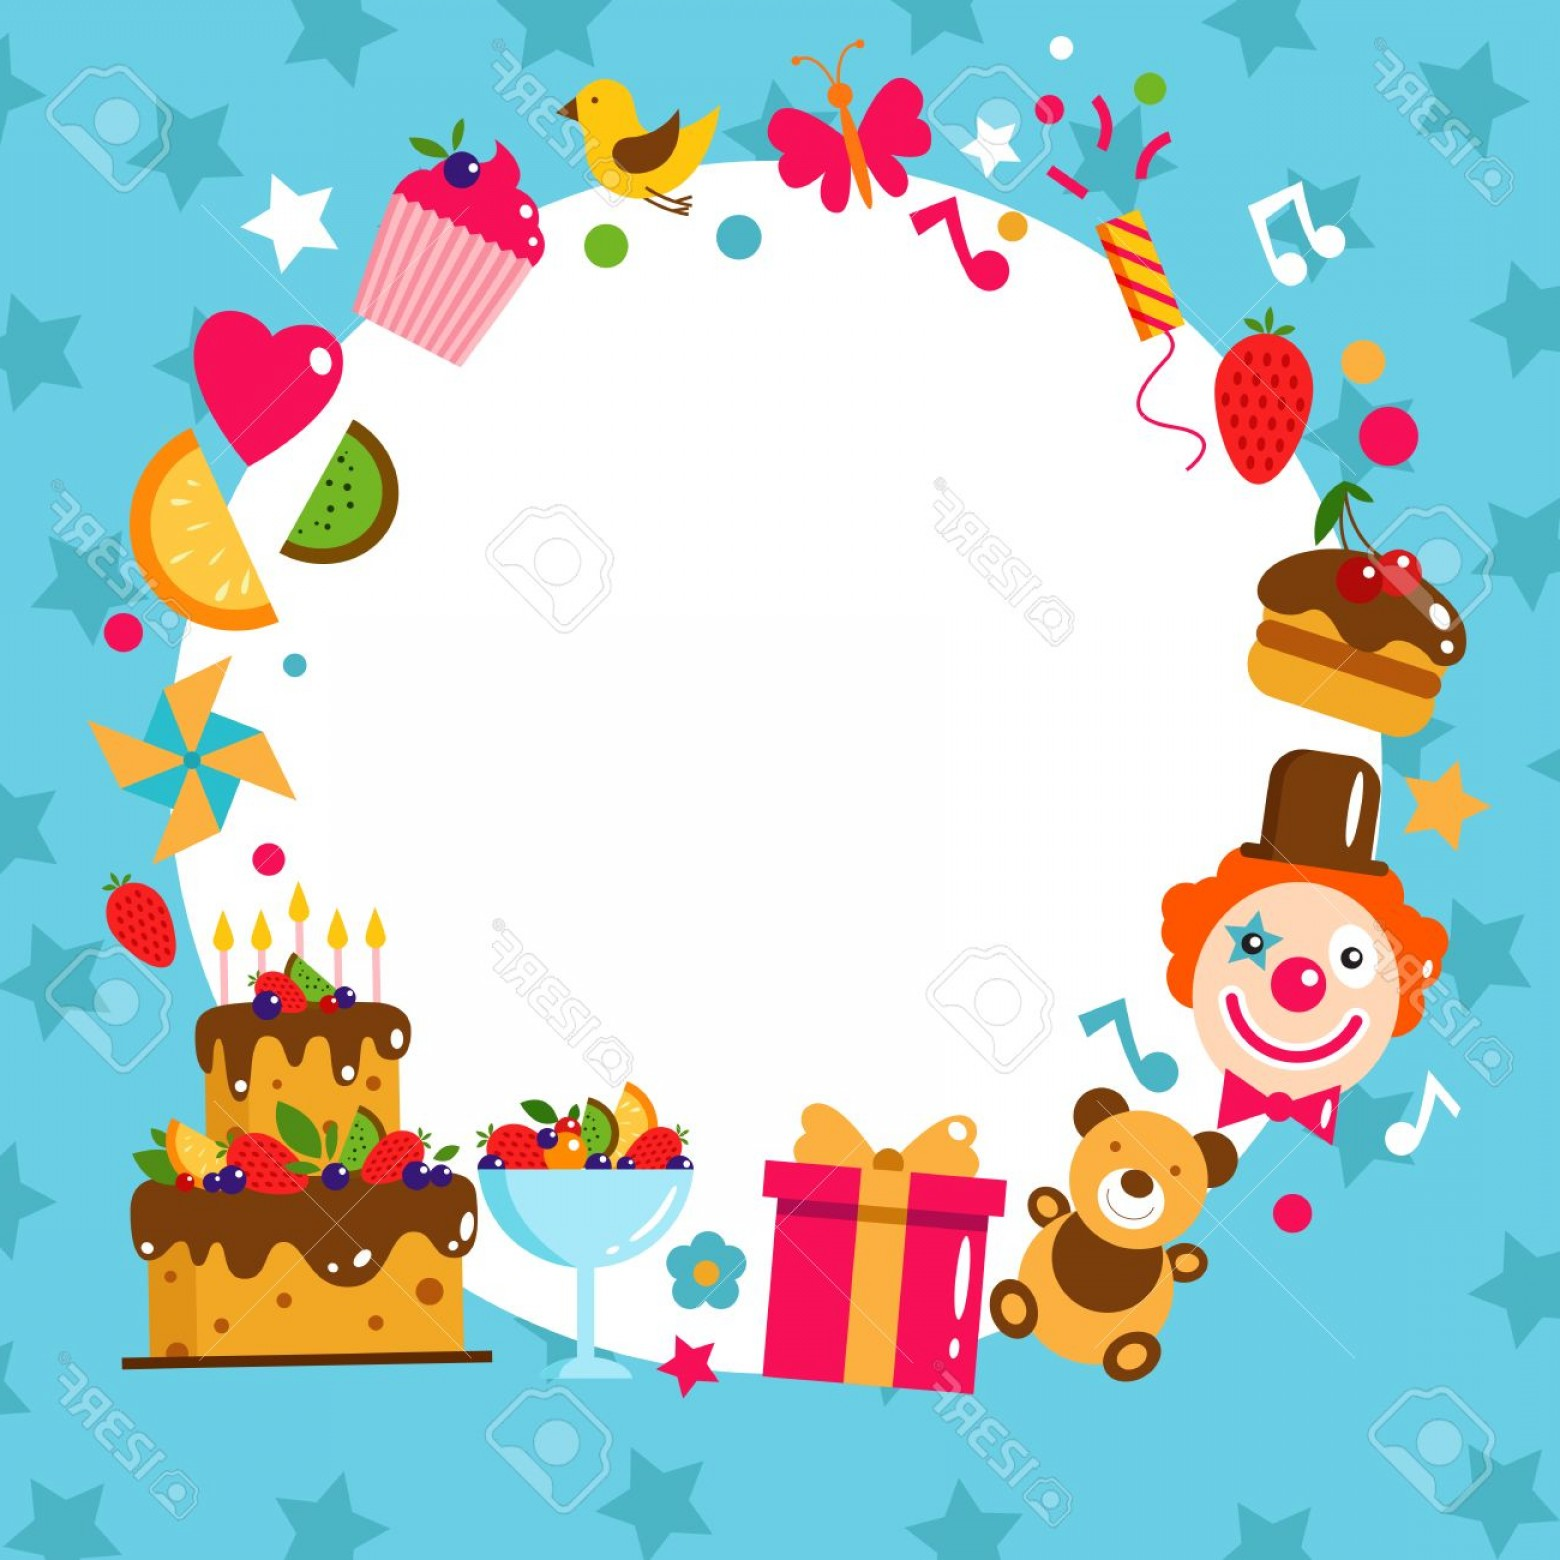 Birthday Card Vector Frame Designs: Photostock Vector Happy Birthday Card Flat Vector Illustration Kids Party And Celebration Design Elements Cake Gift Be